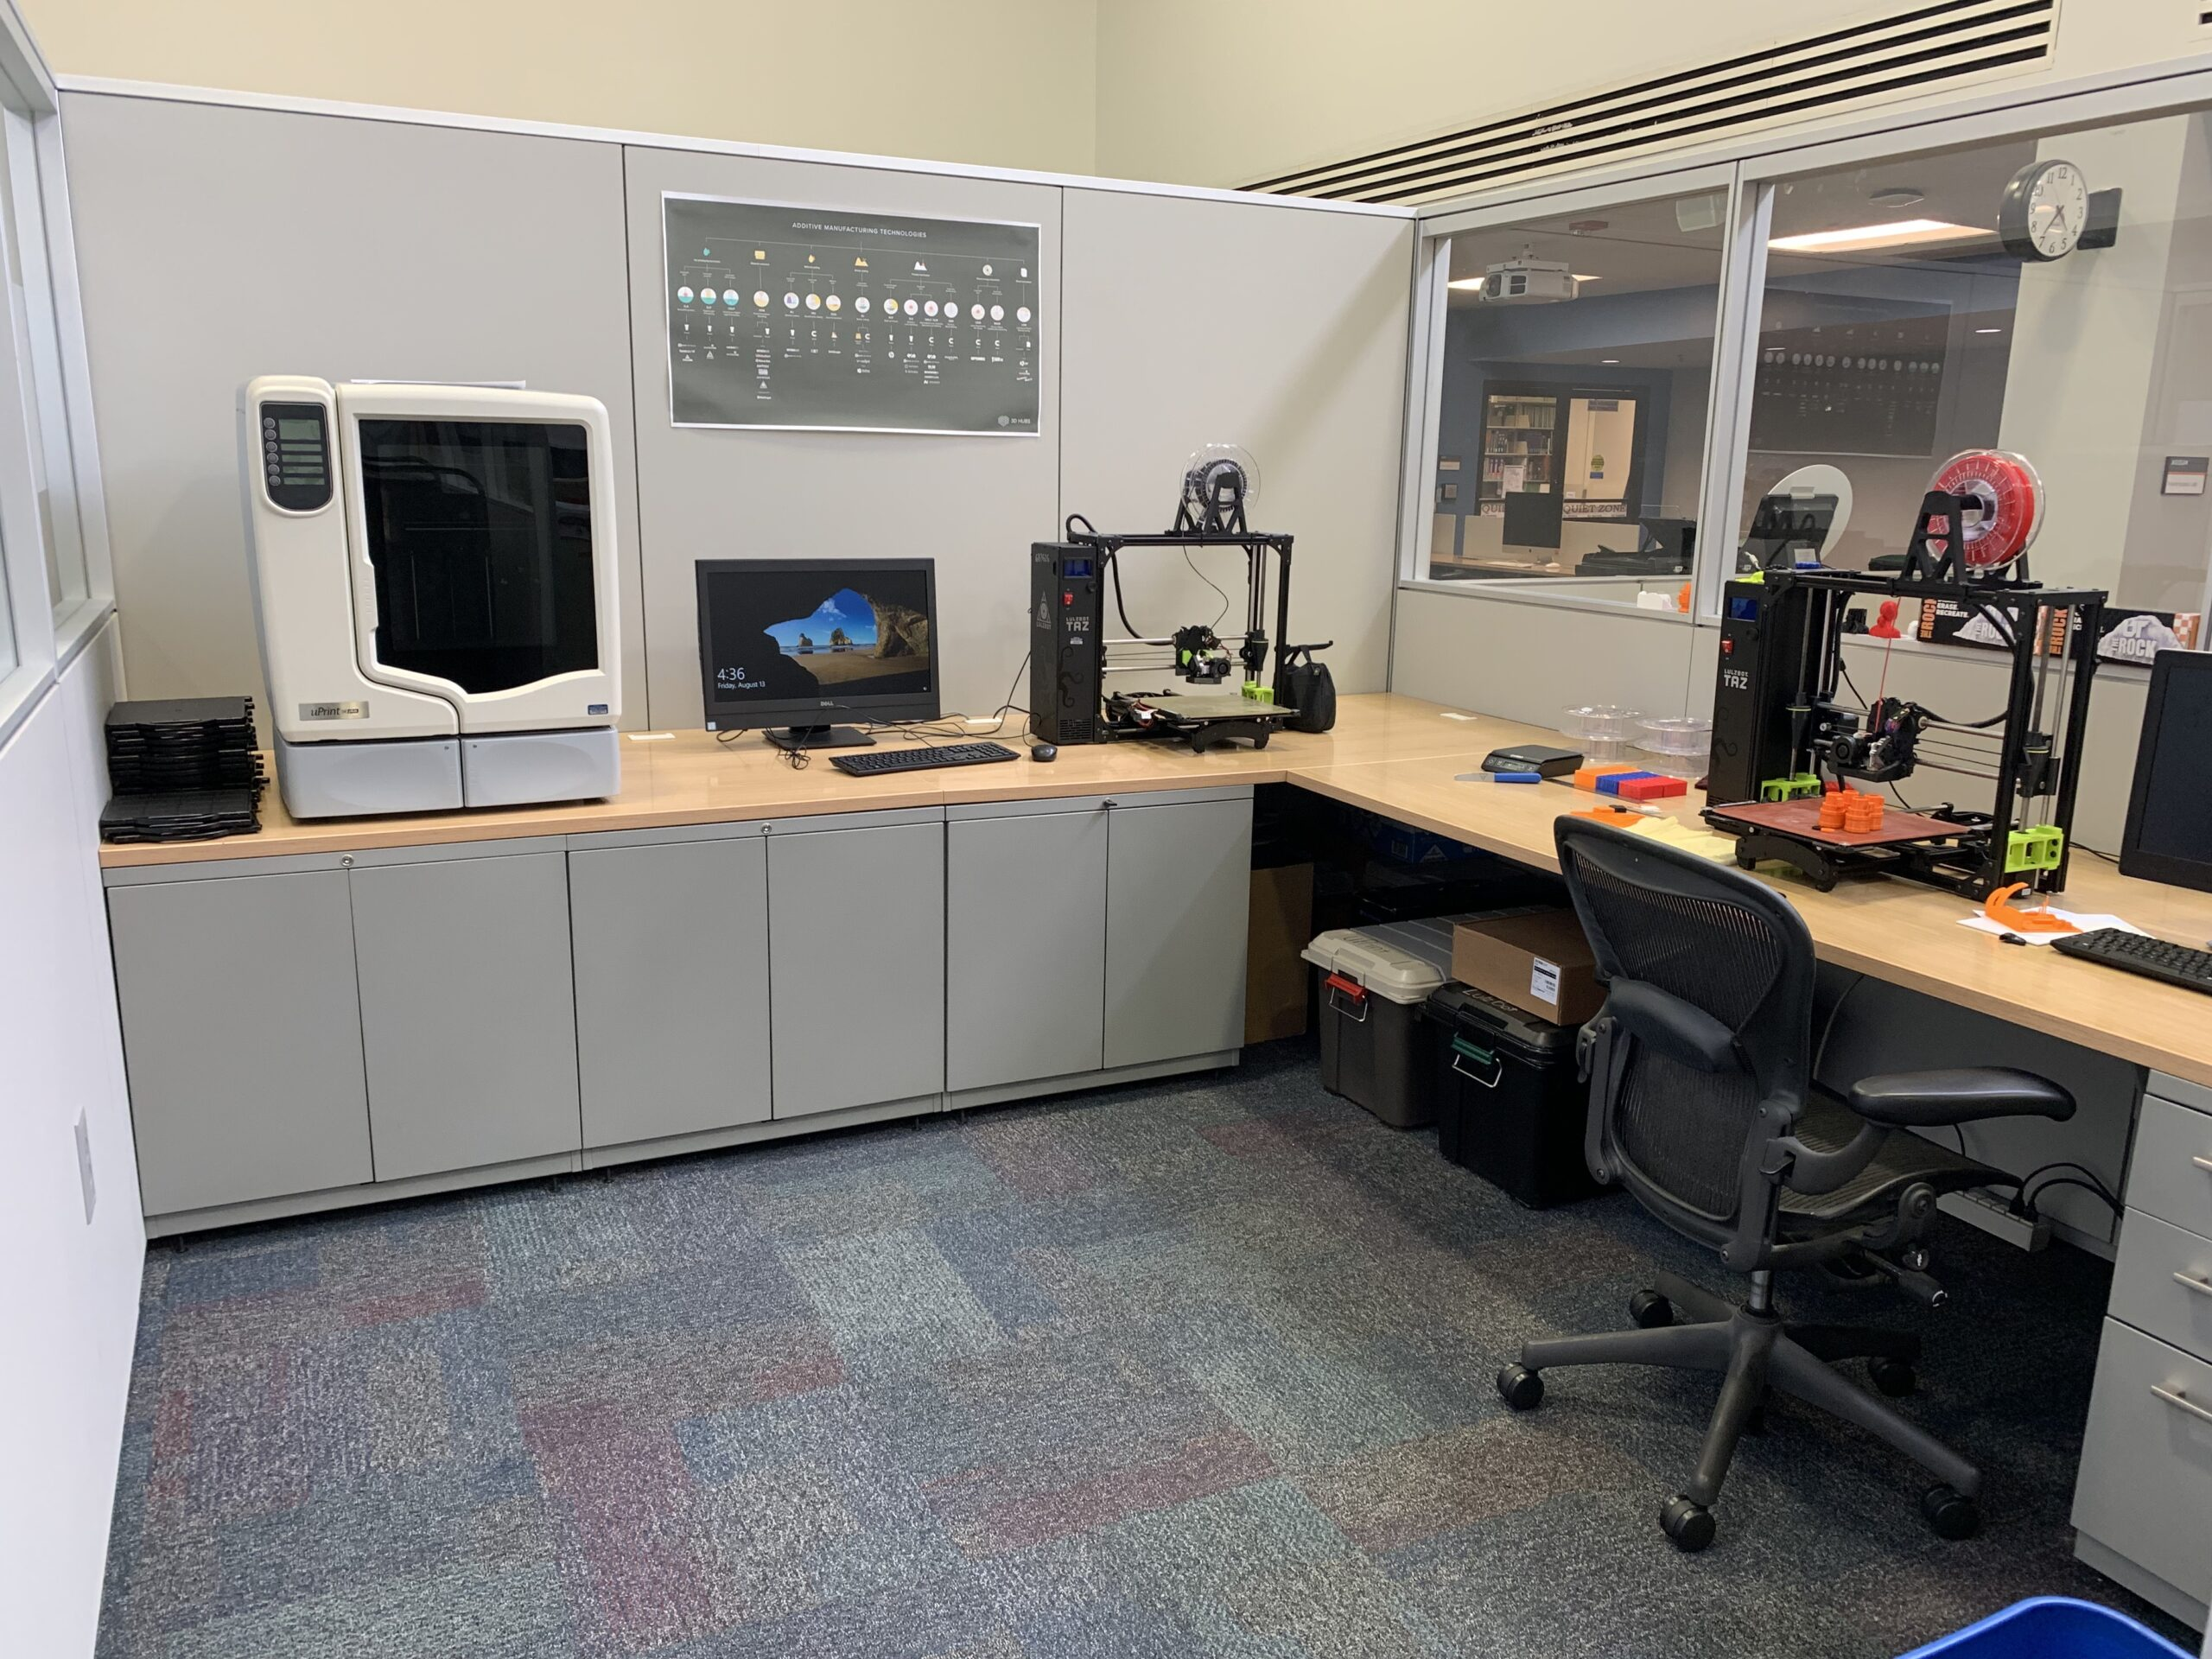 Makerspace area in Pendergrass Library. On the left there is the uPrint professional grade 3D printer. To the right, there are two Taz Lulzbot 6 printers.